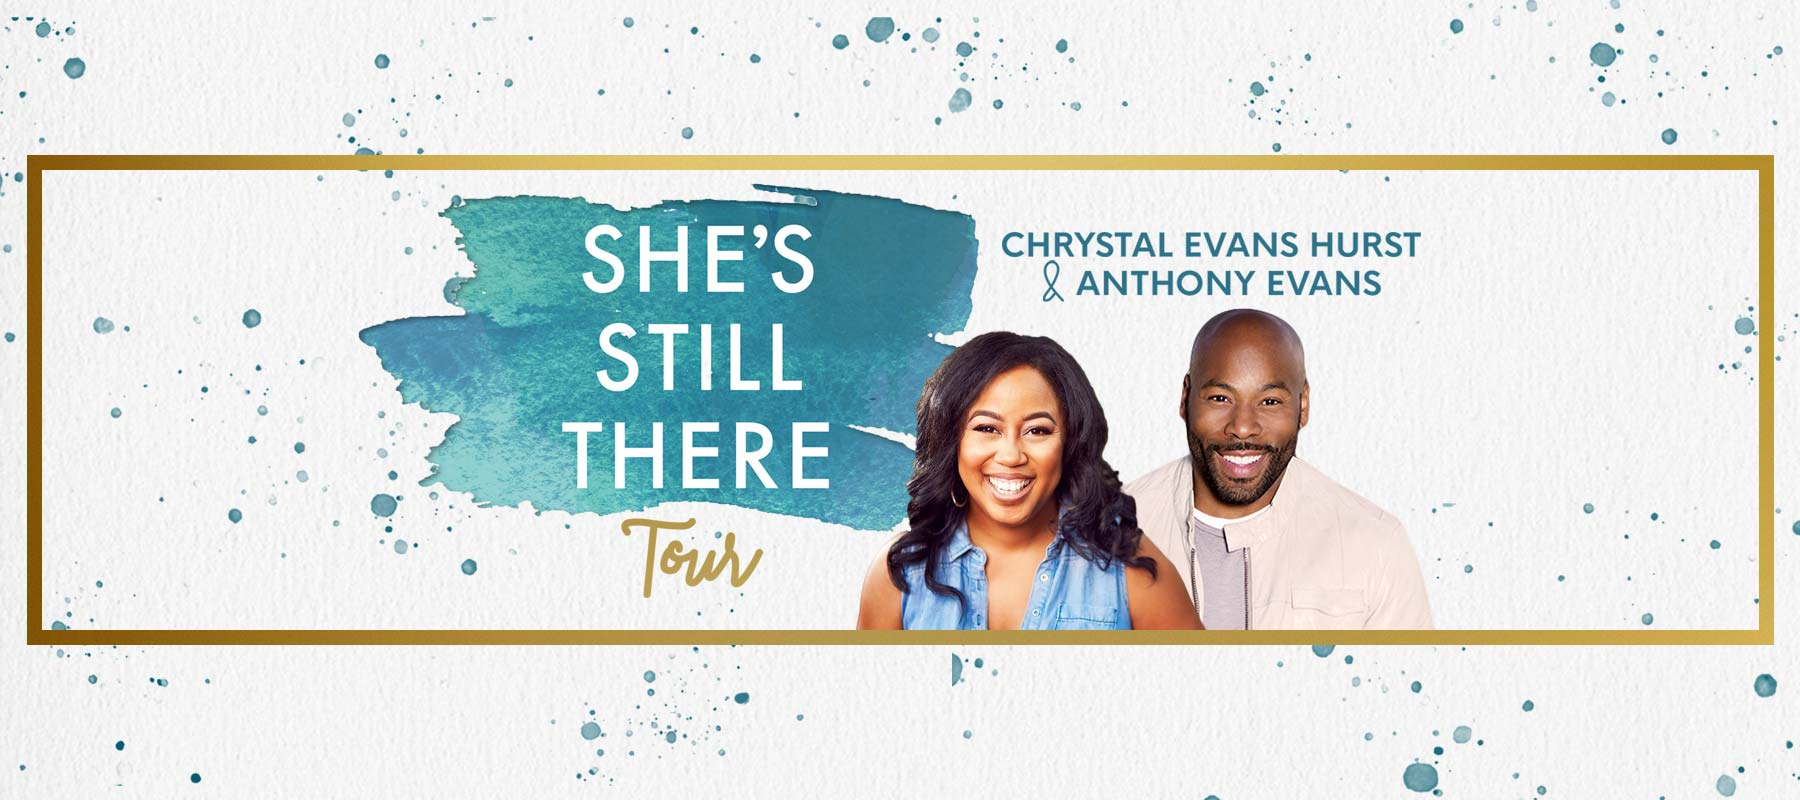 She's Still There Tour with Chrystal Evans Hurst and Anthony Evans logo